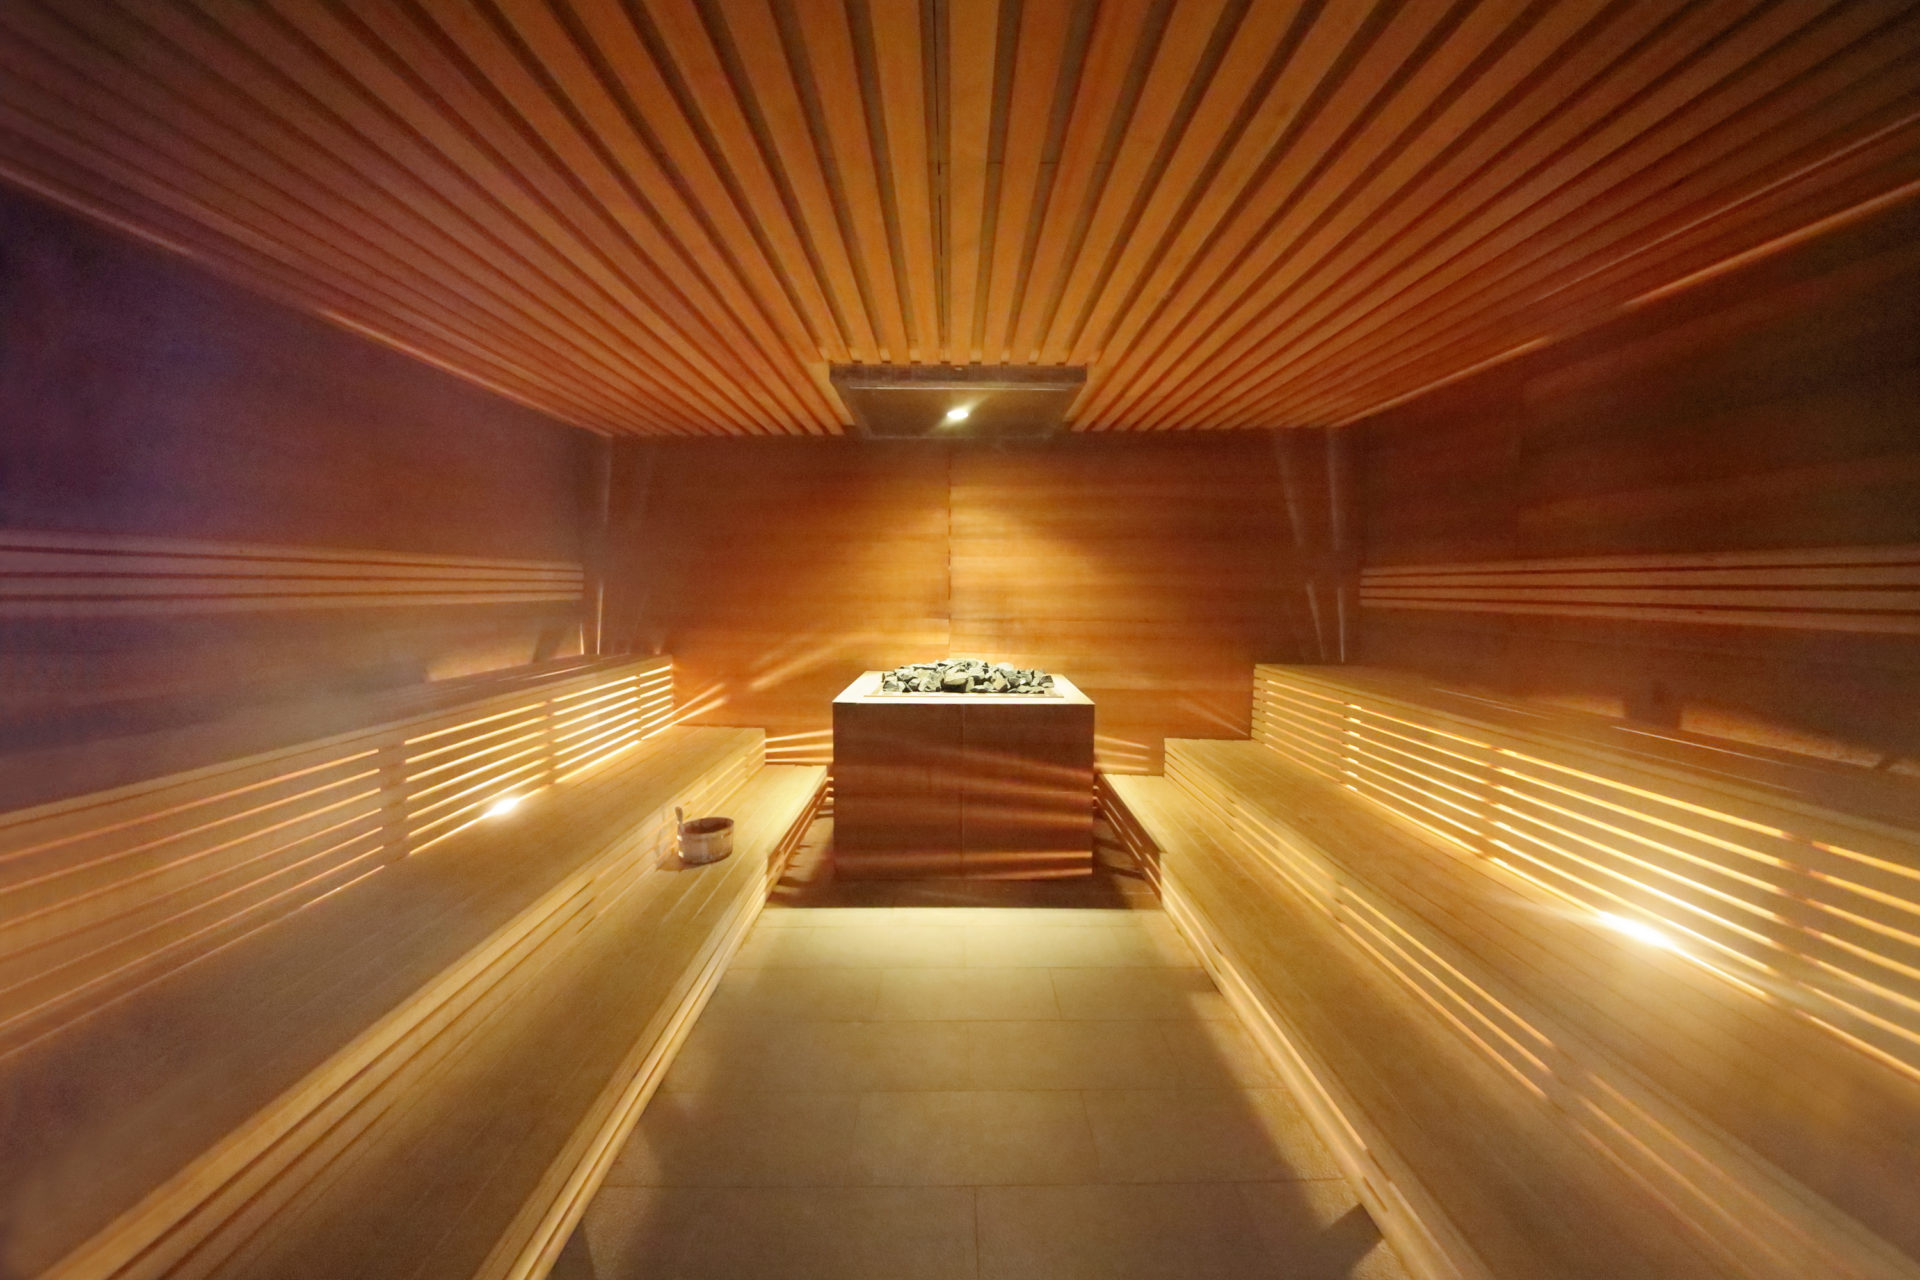 Interior Inside The Sauna Room With Wooden Benches And Hot Stones